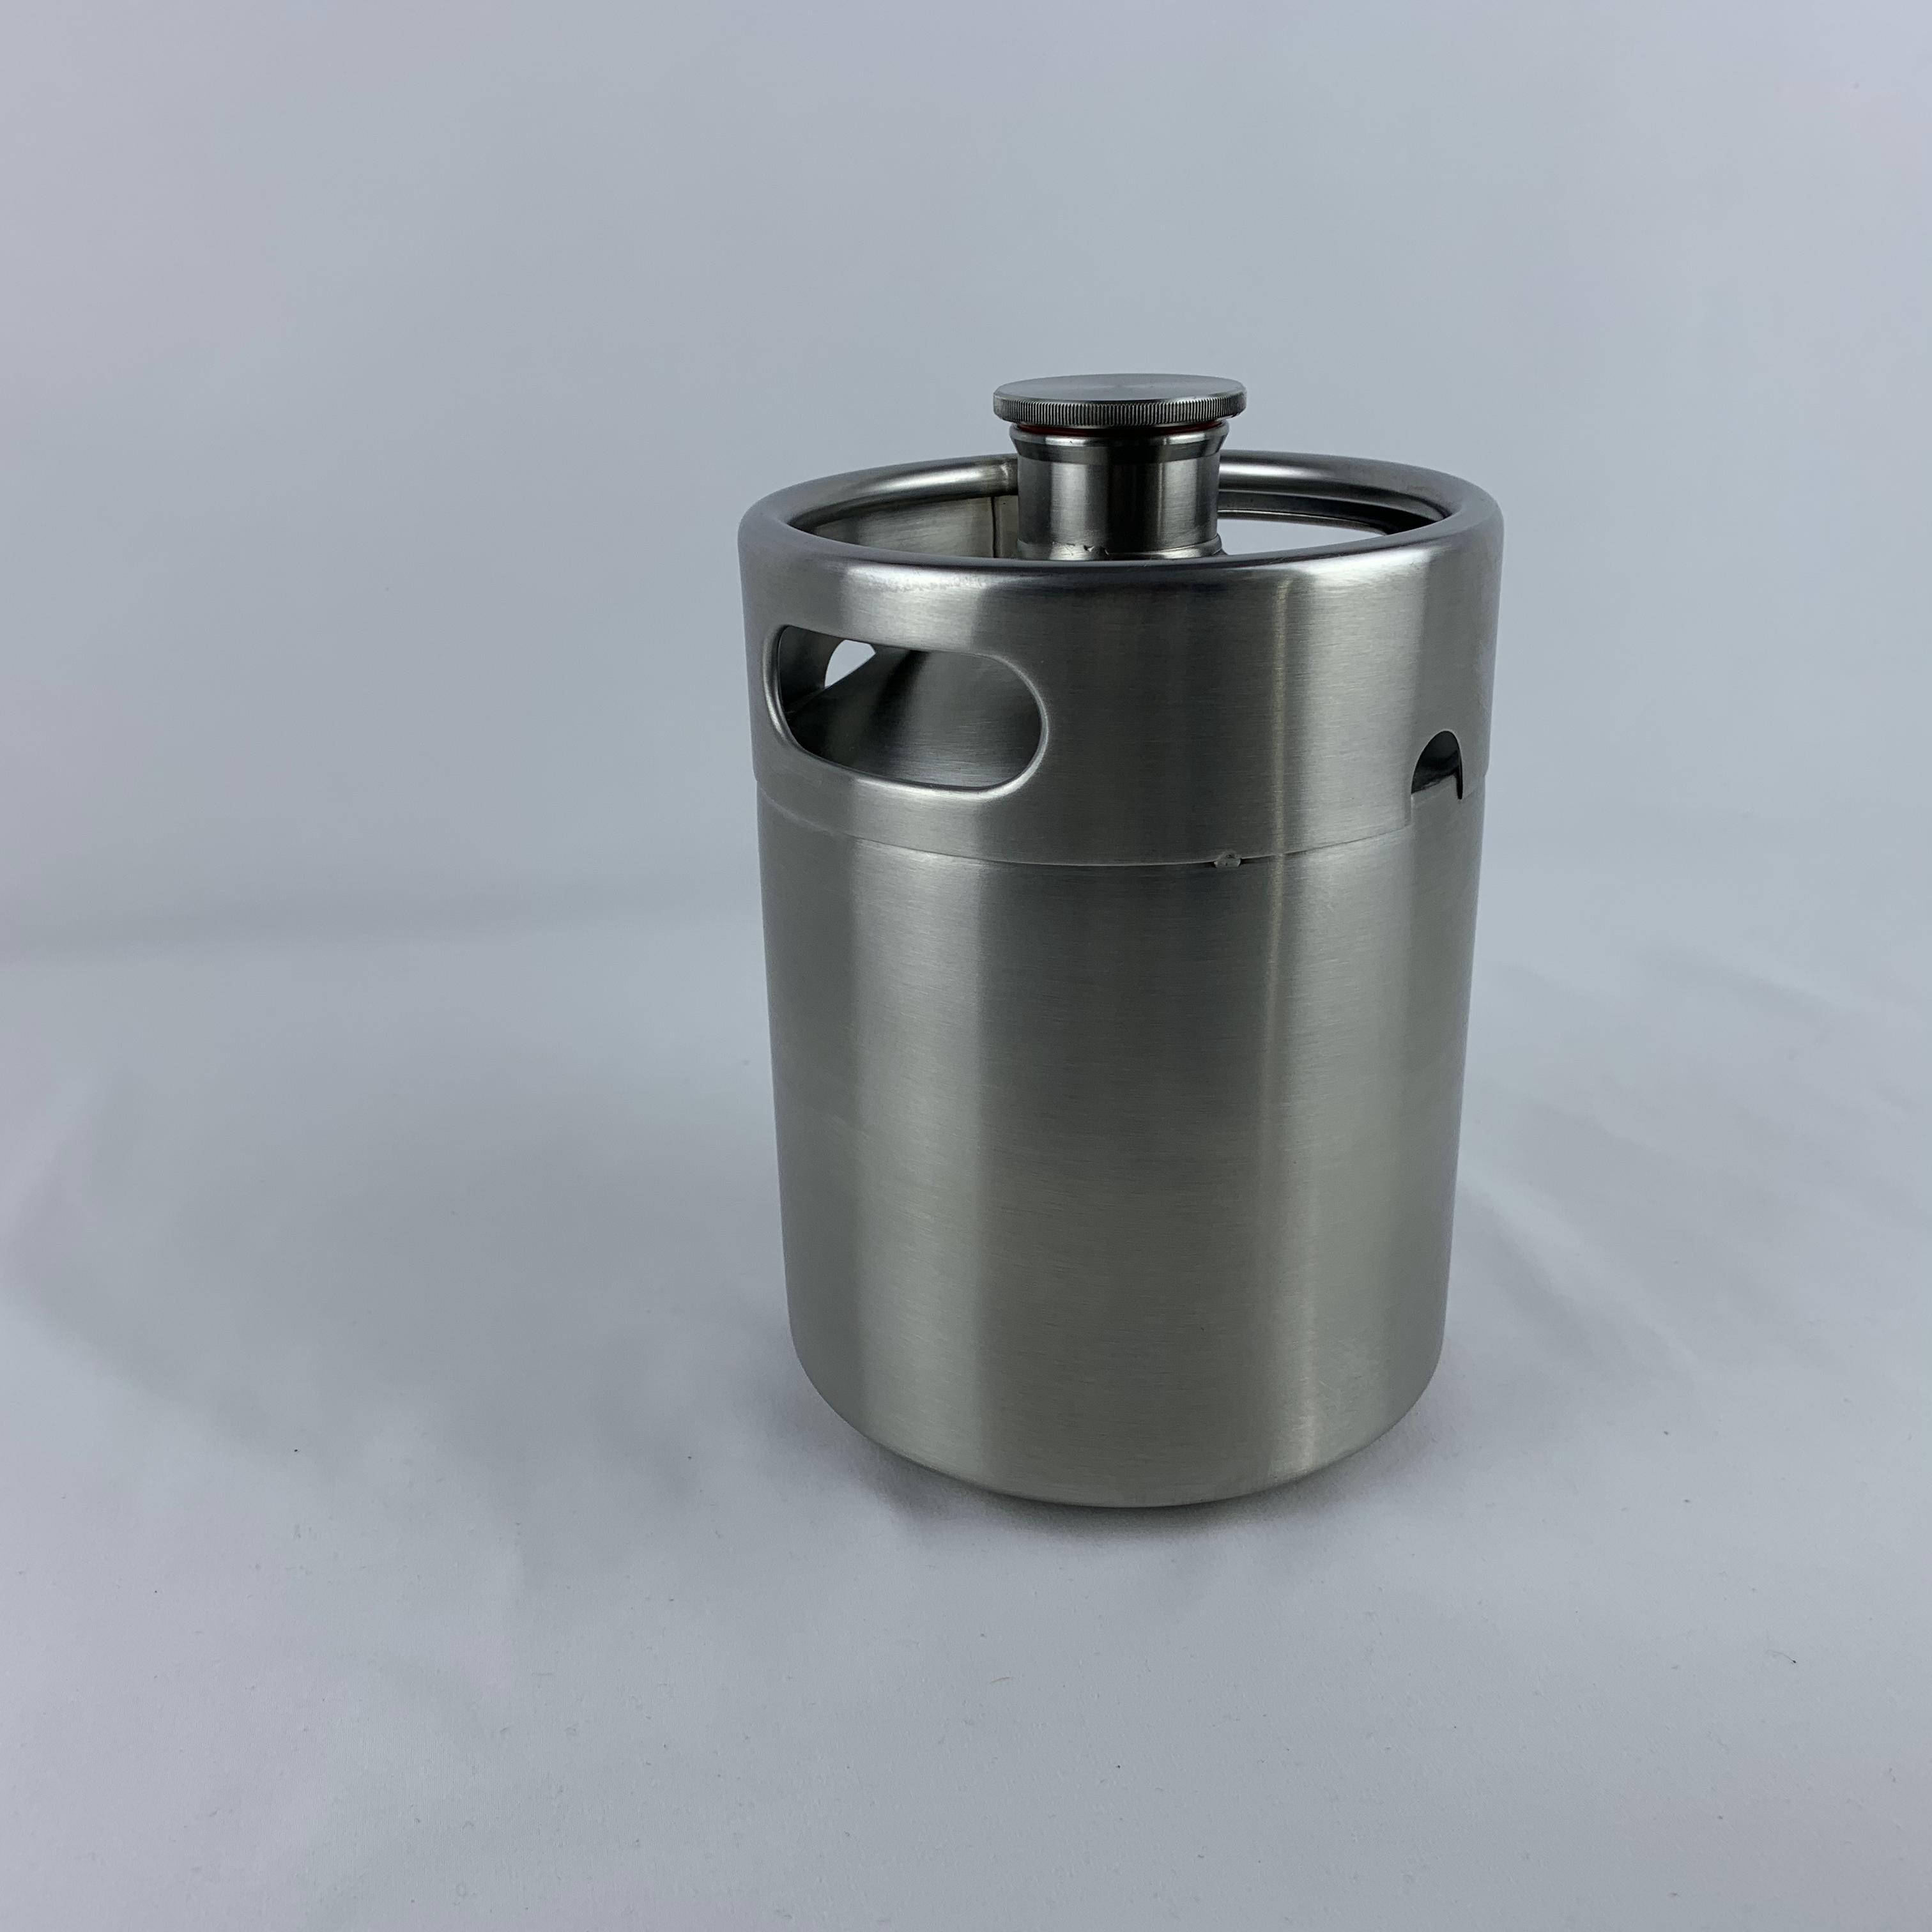 64oz mini keg housebrew for party dispenser made of high quality stainless steel handle polished growler tap system 2l growler image